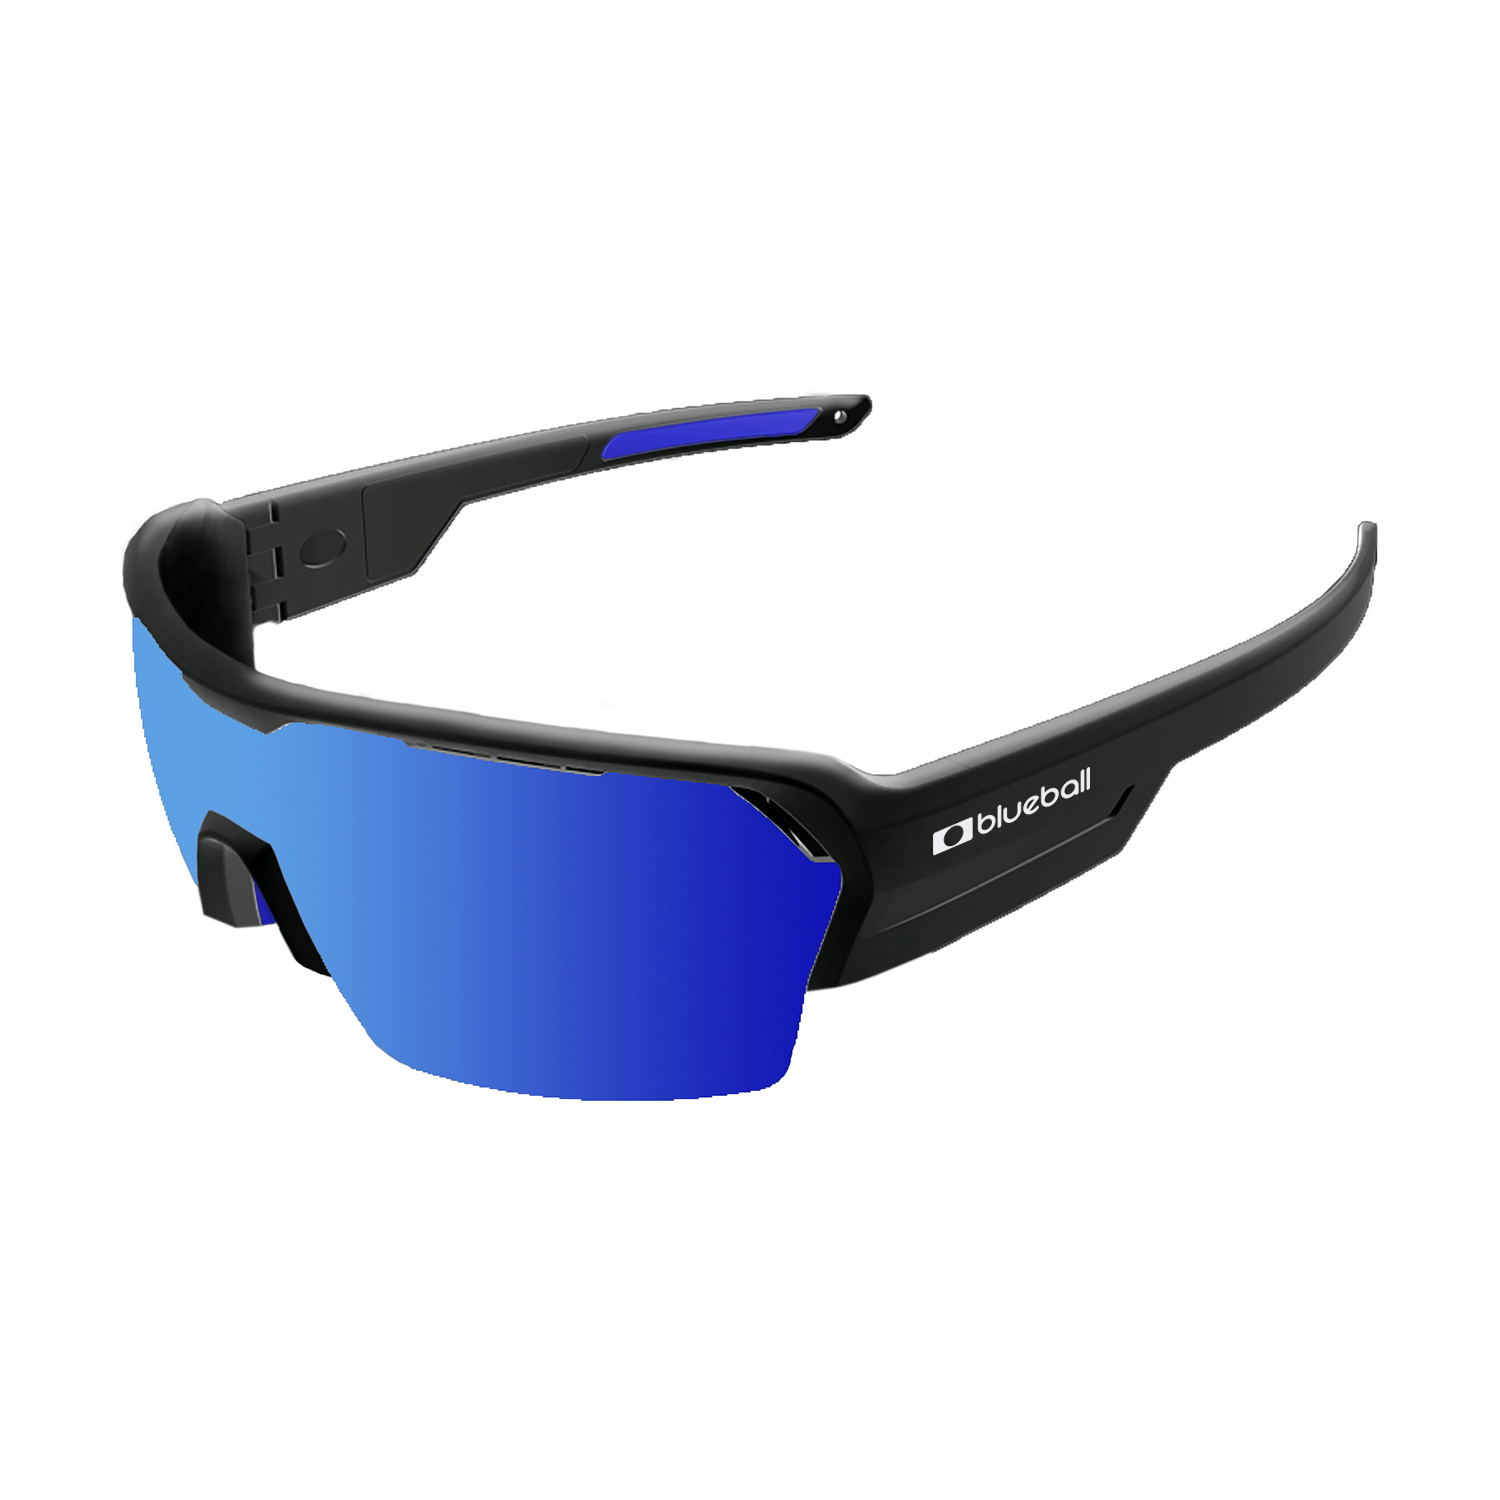 bb3800 outdoor sport sunglasses